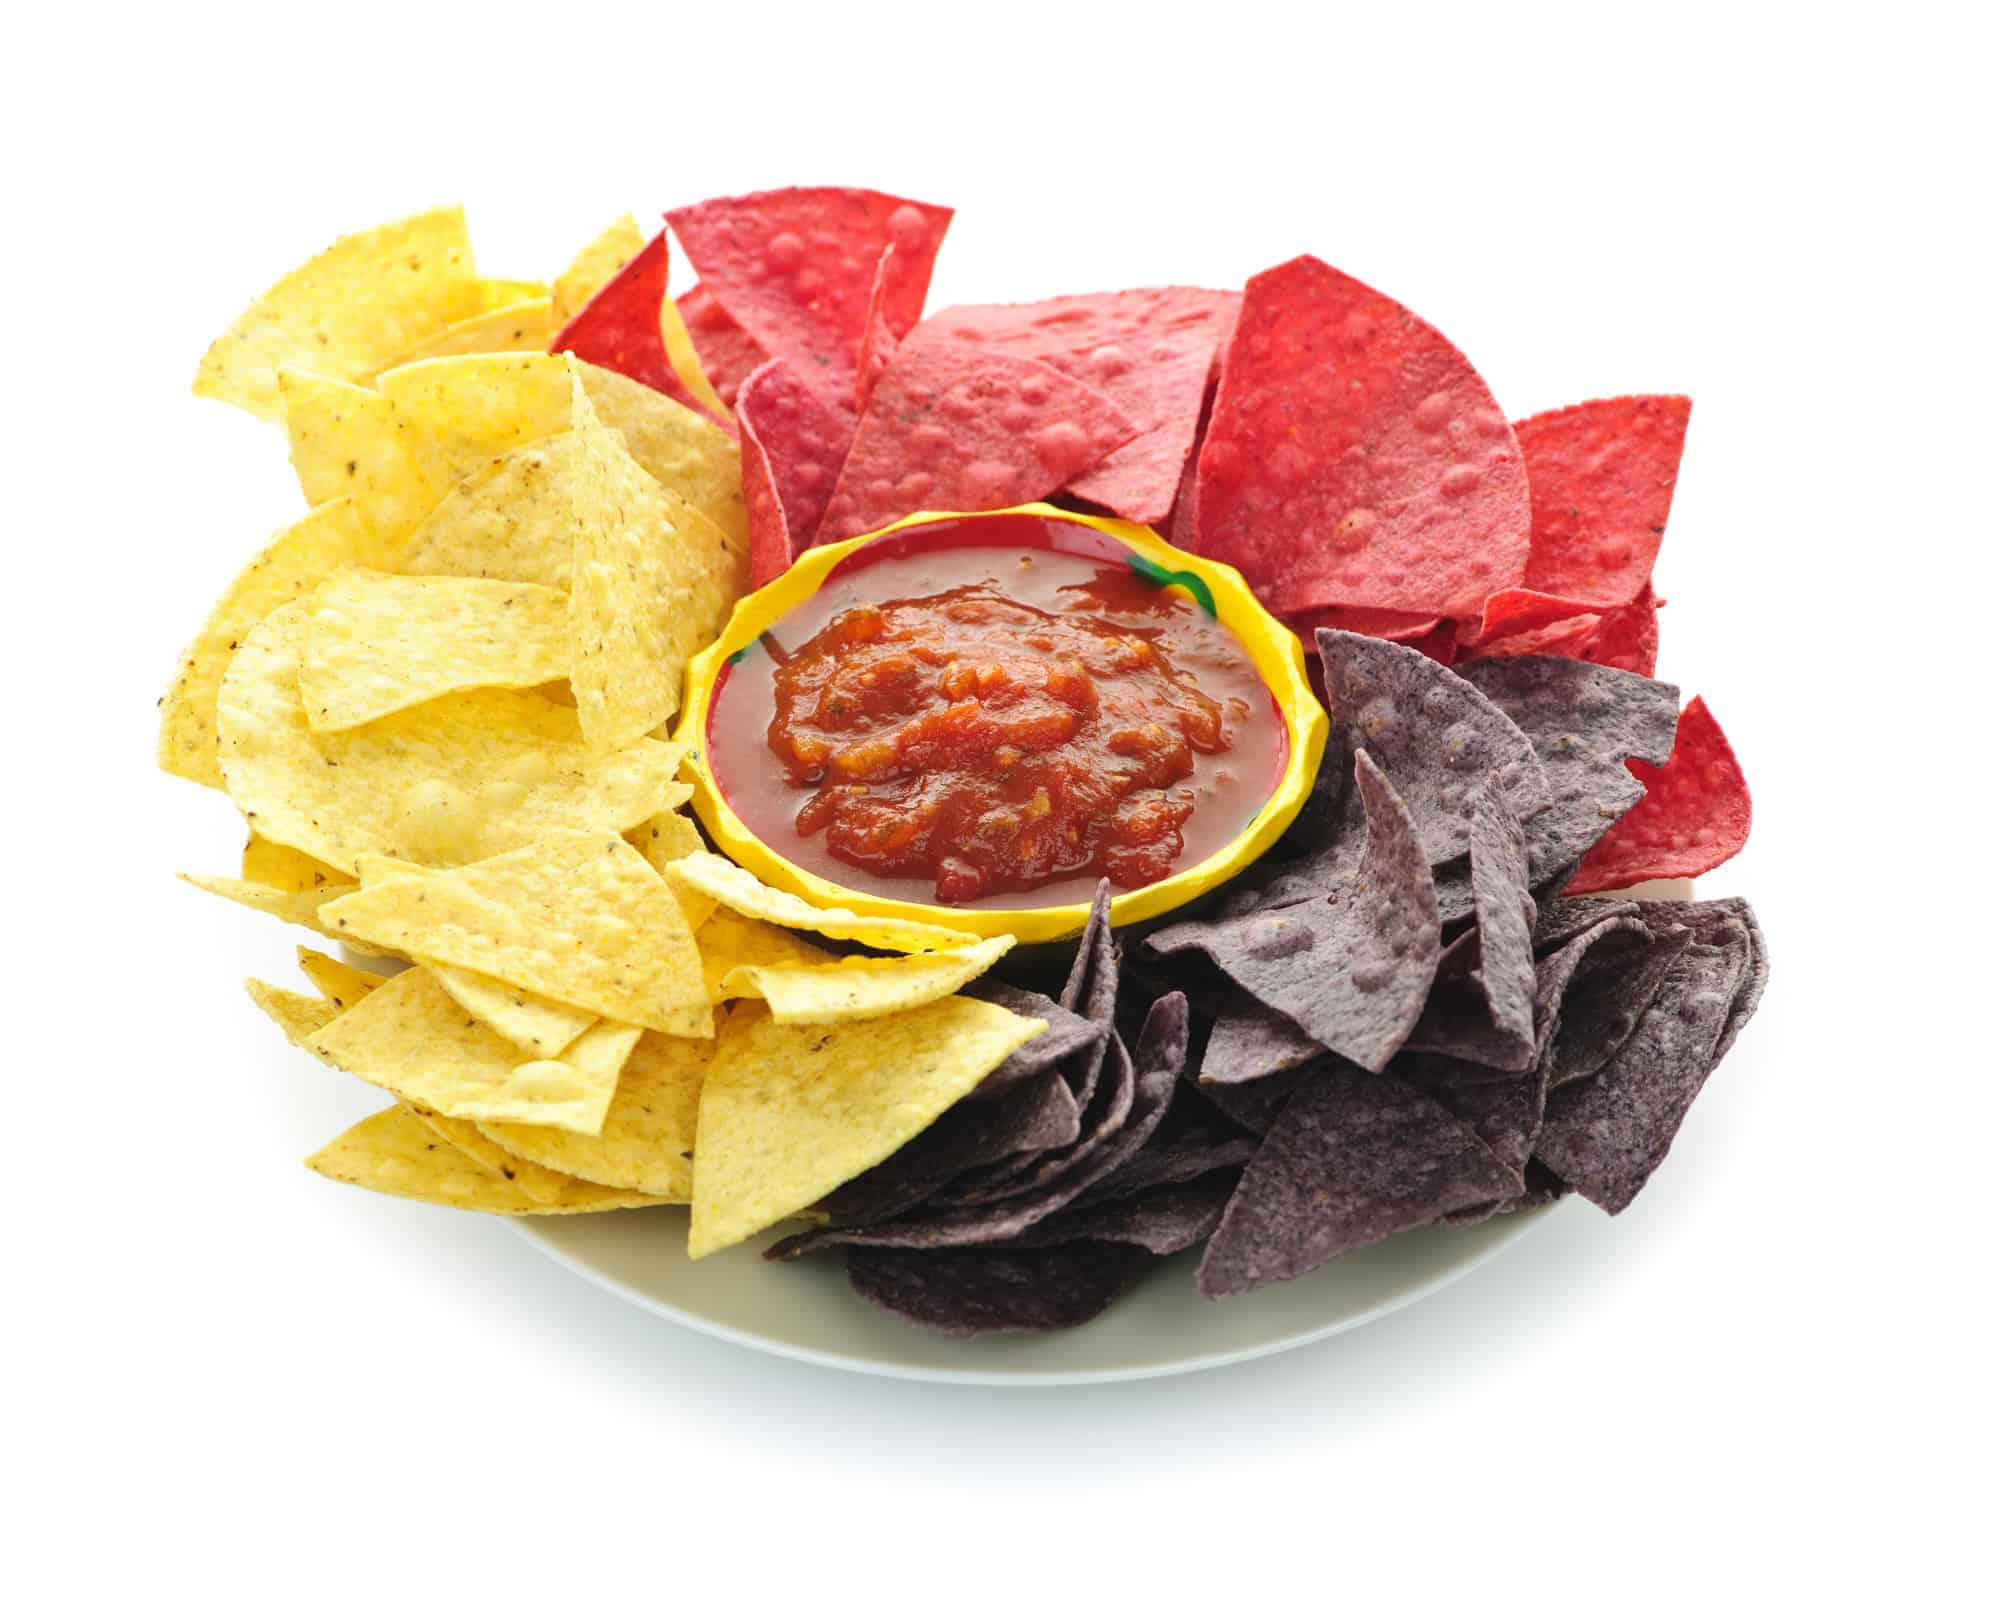 Bowl of salsa with colorful tortilla chips